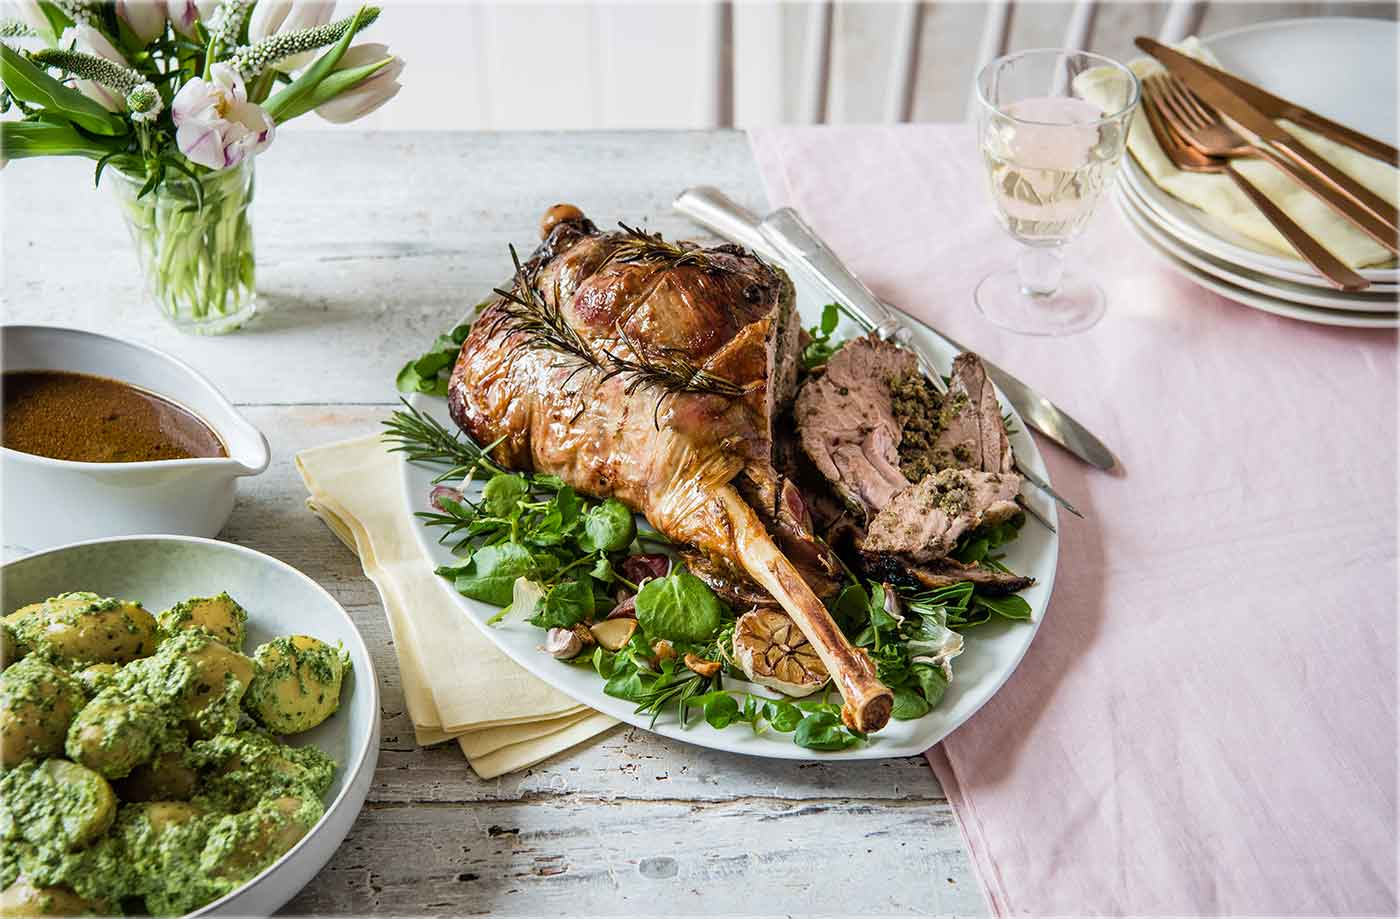 Roast leg of lamb stuffed with watercress and anchovies recipe